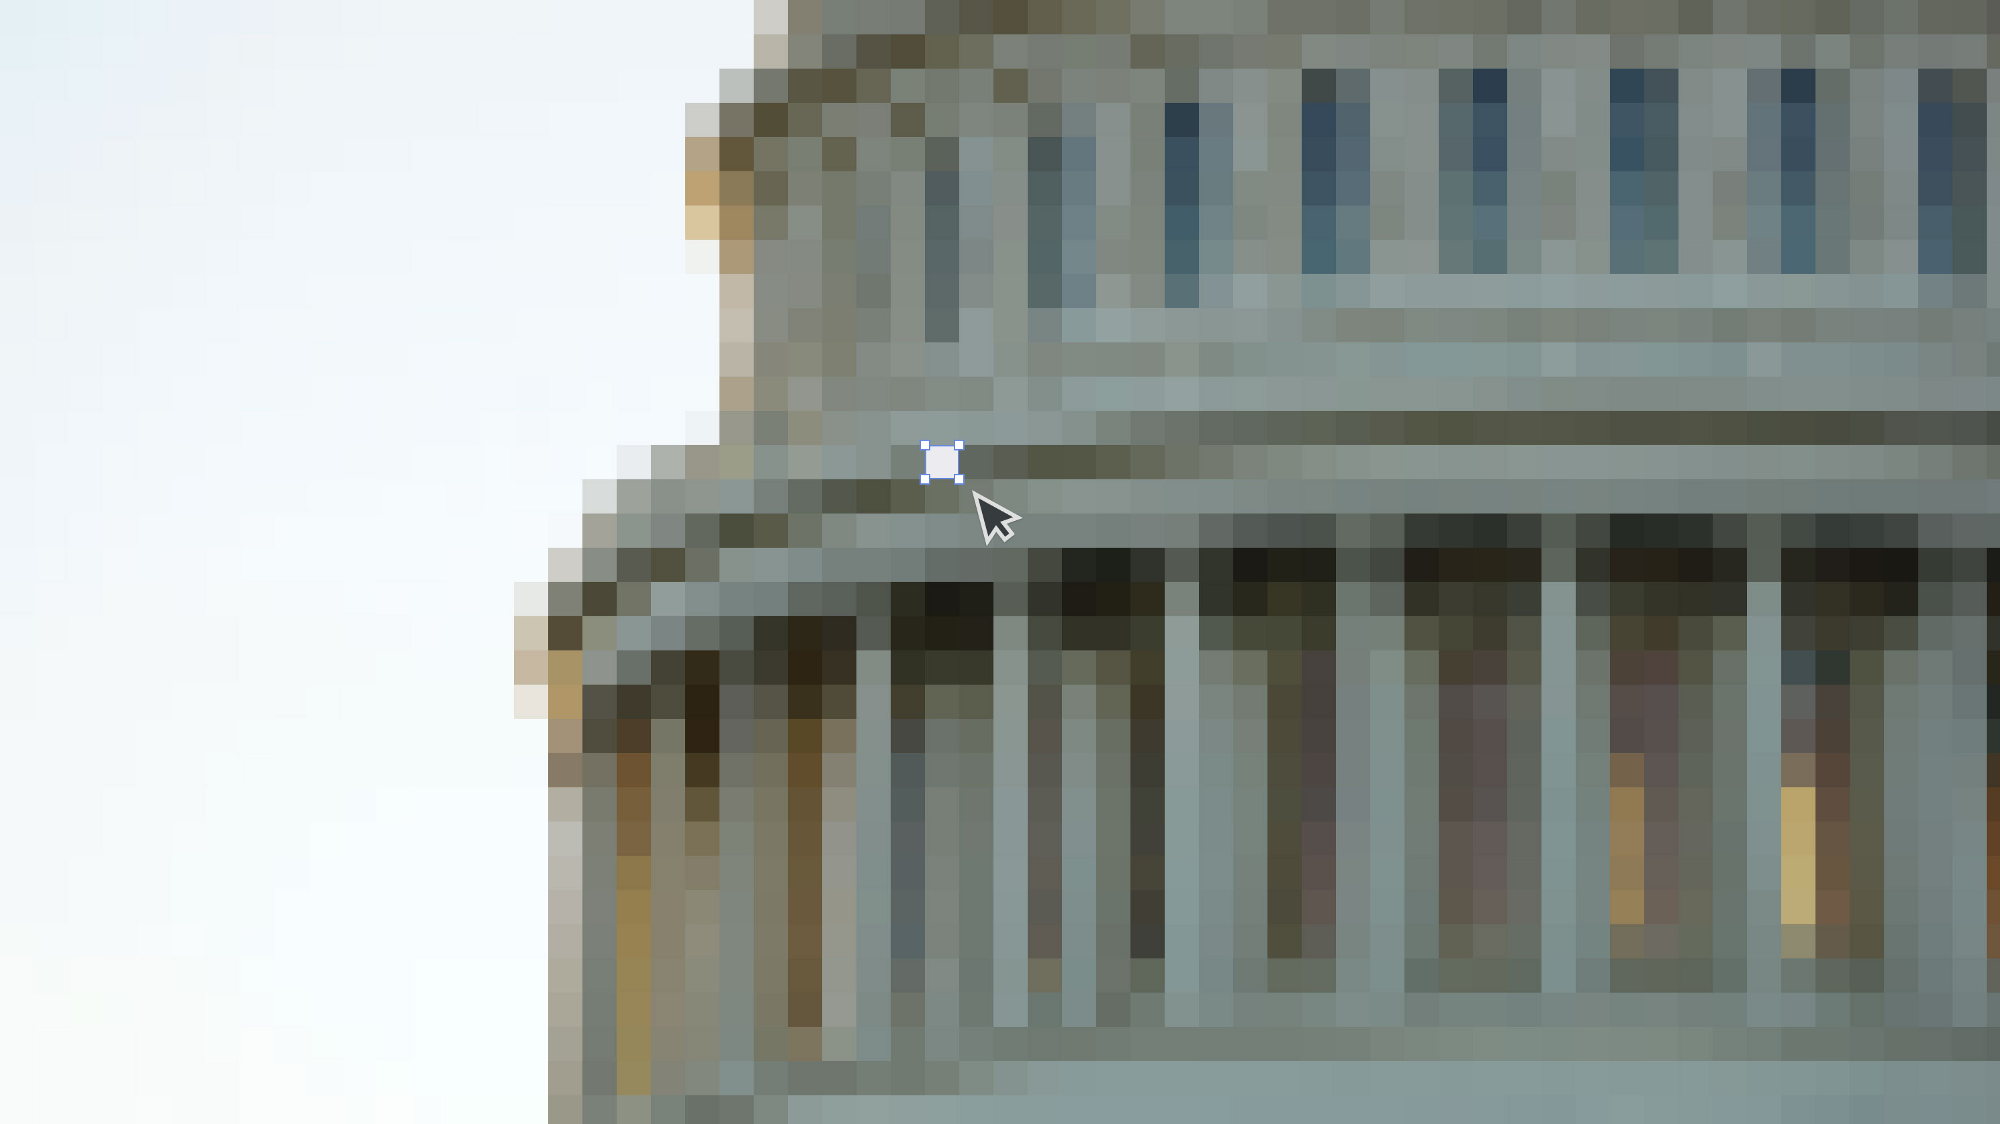 Visual illustration showing a pixelated government building, with a pixel selected, and being edited.